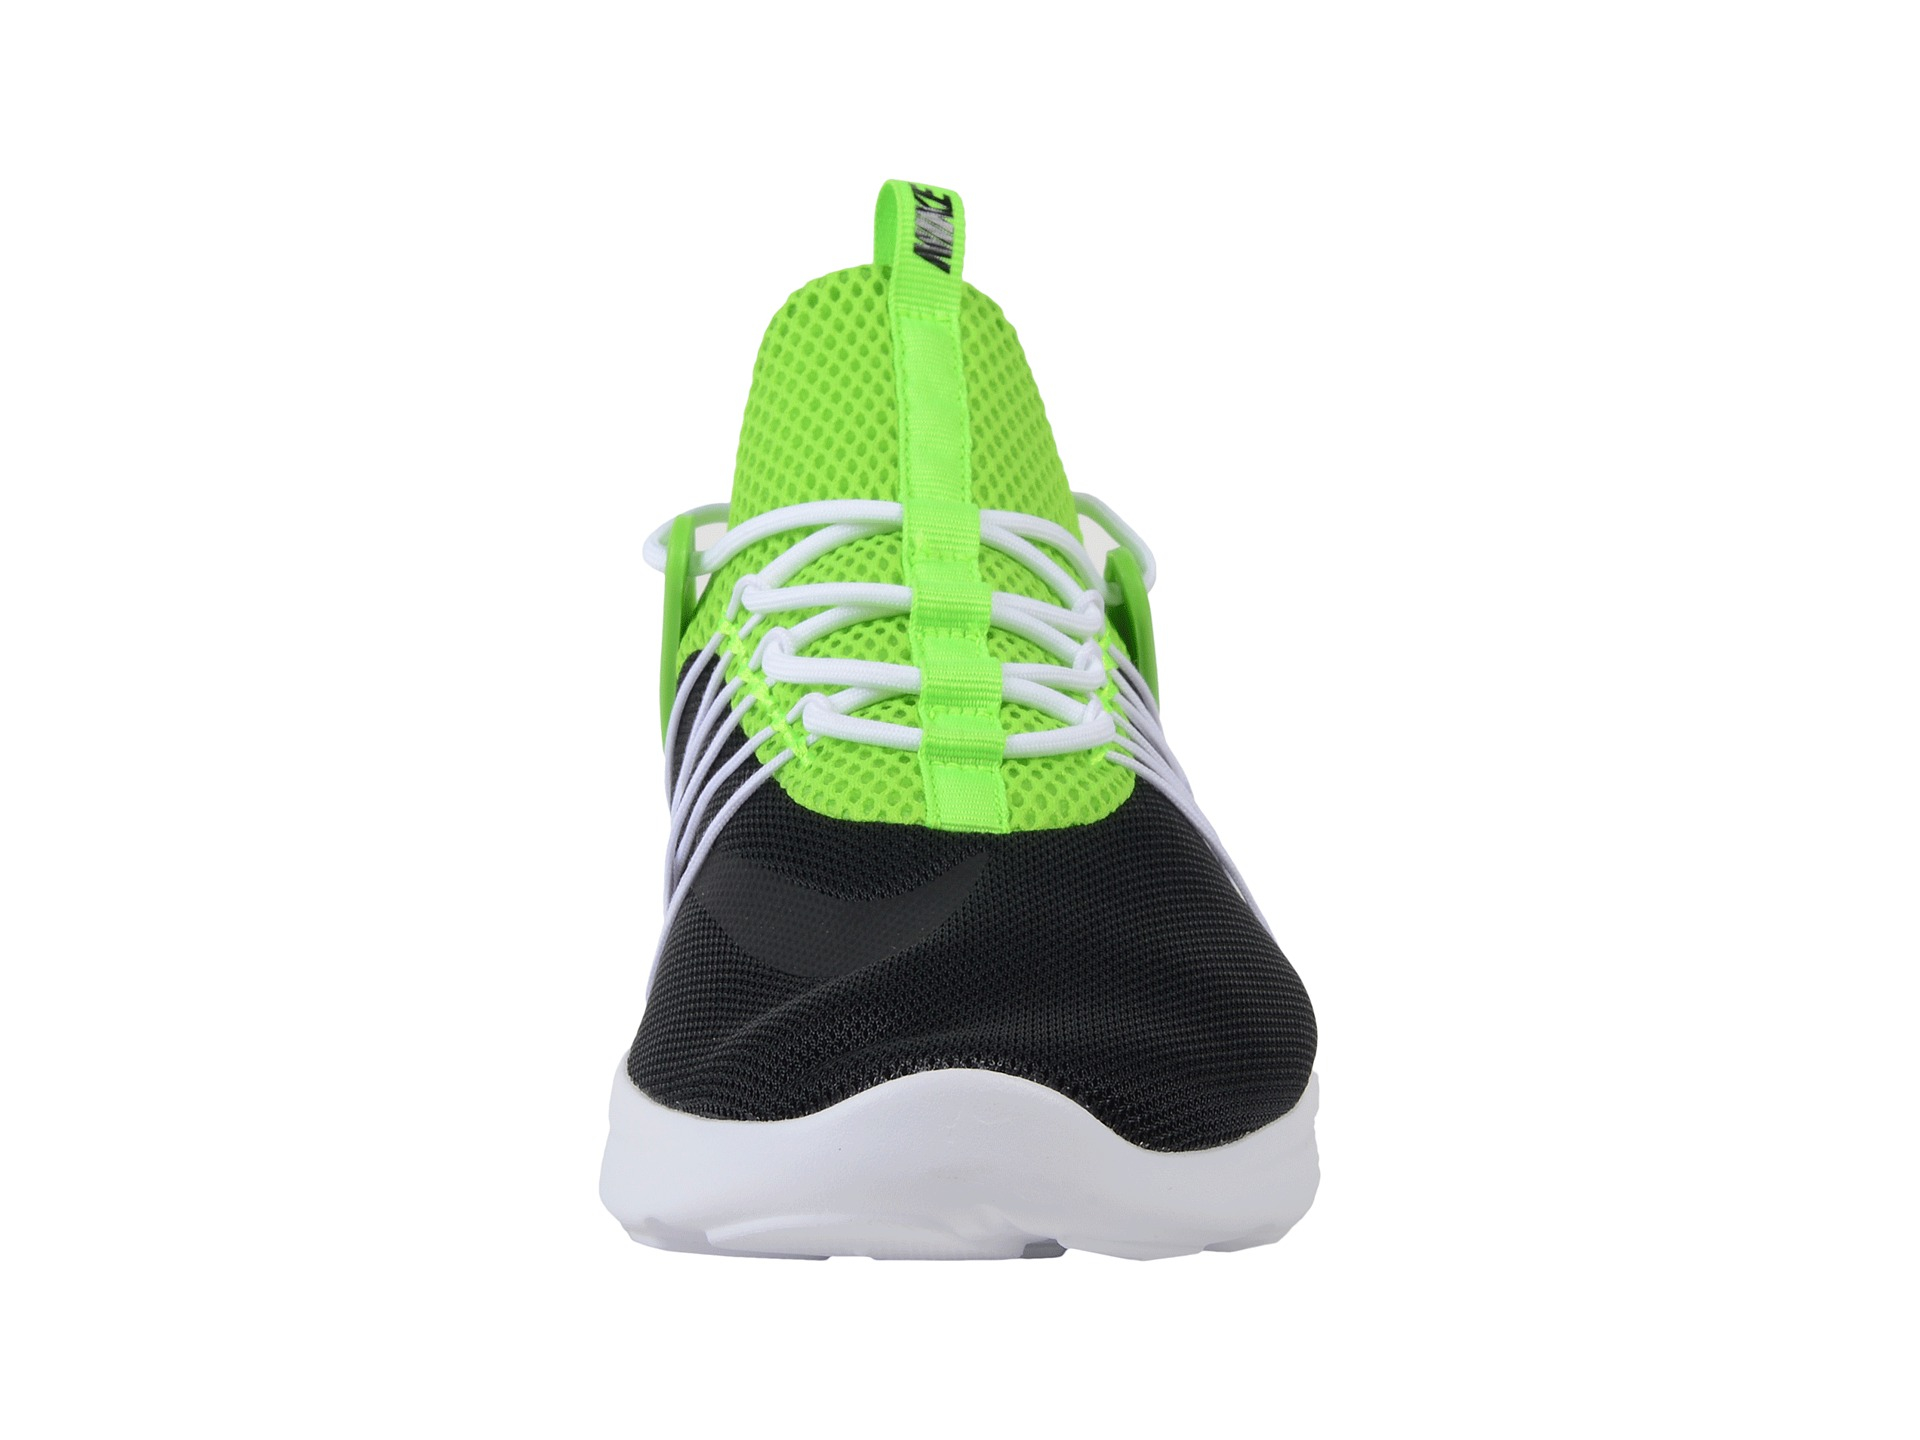 separation shoes 38f0f 545cd ... Lyst - Nike Darwin for Men